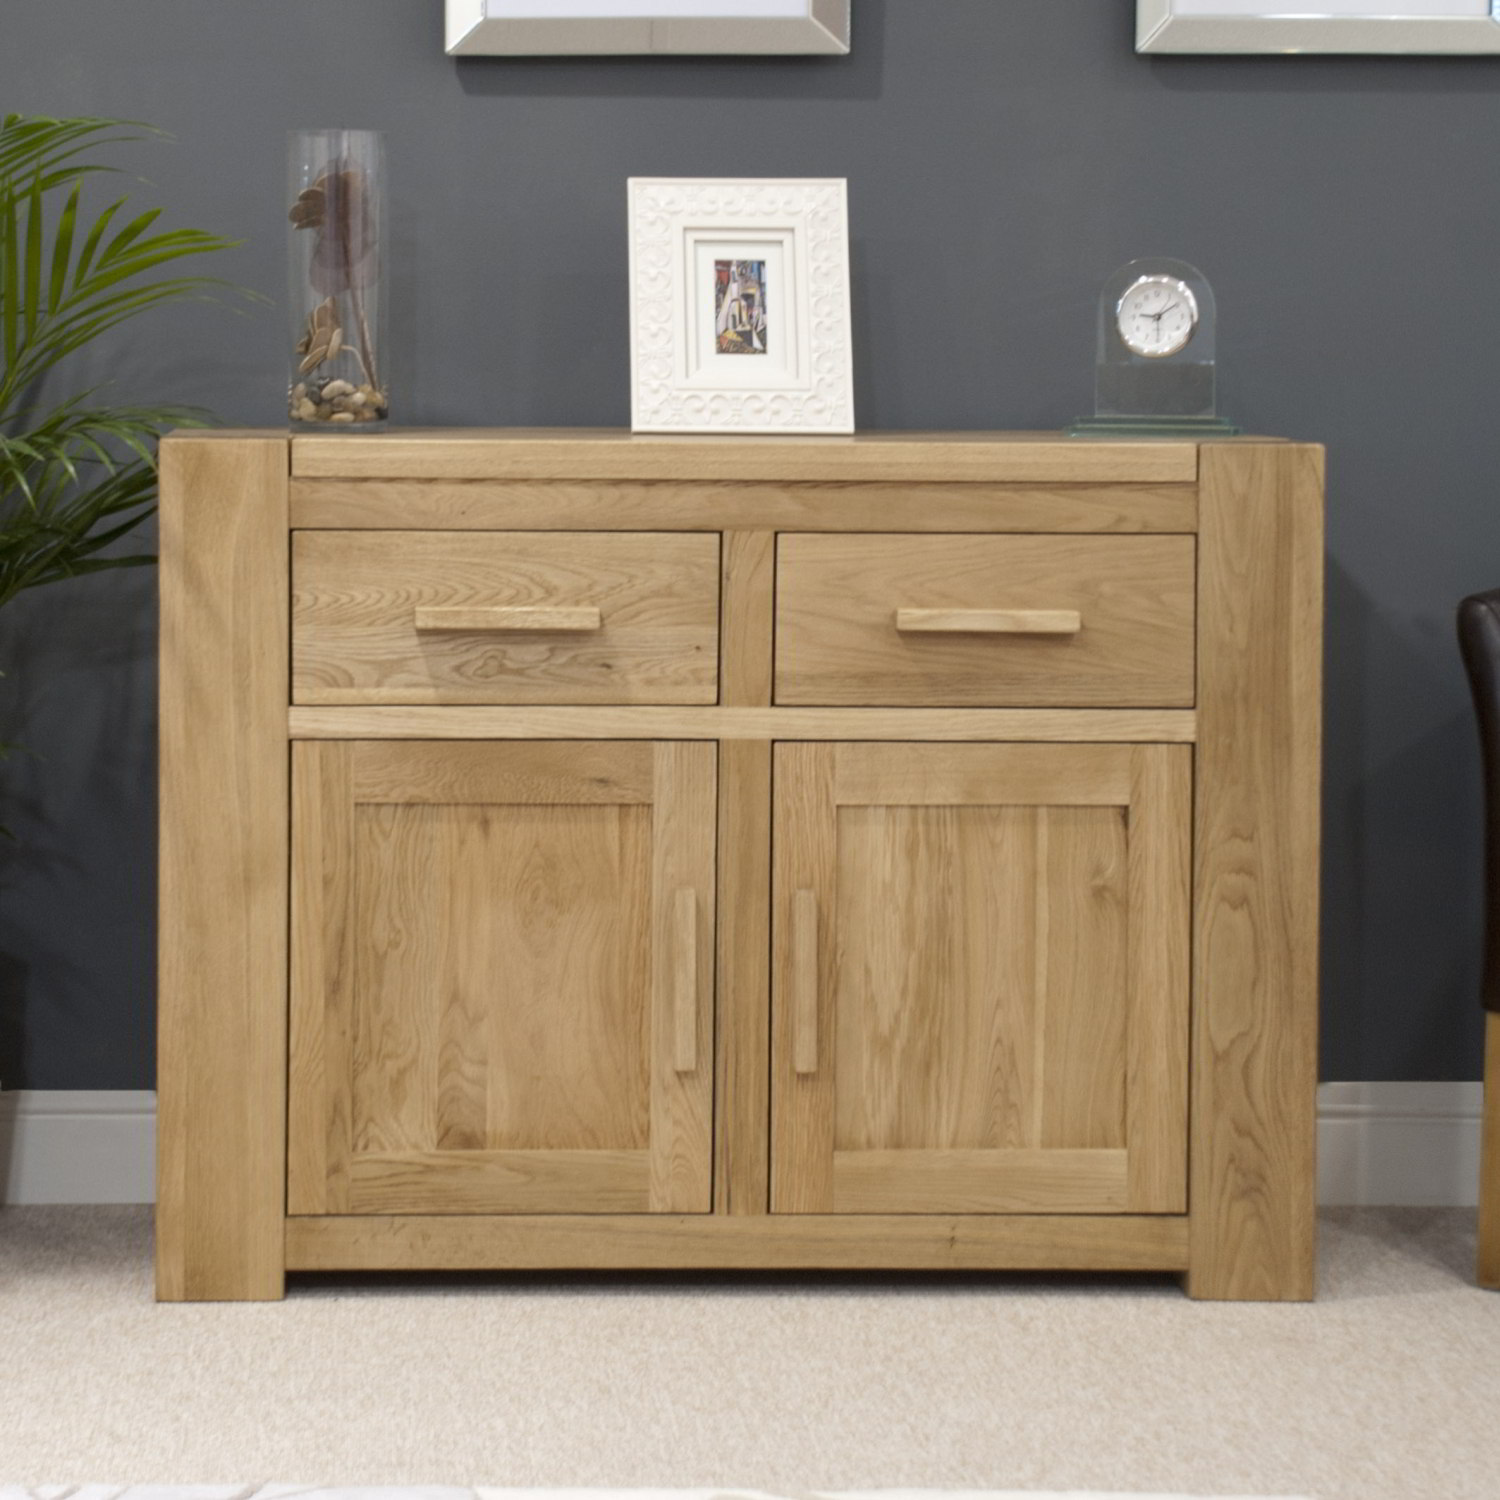 Pemberton Solid Oak Living Room Furniture Medium Storage Sideboard Ebay